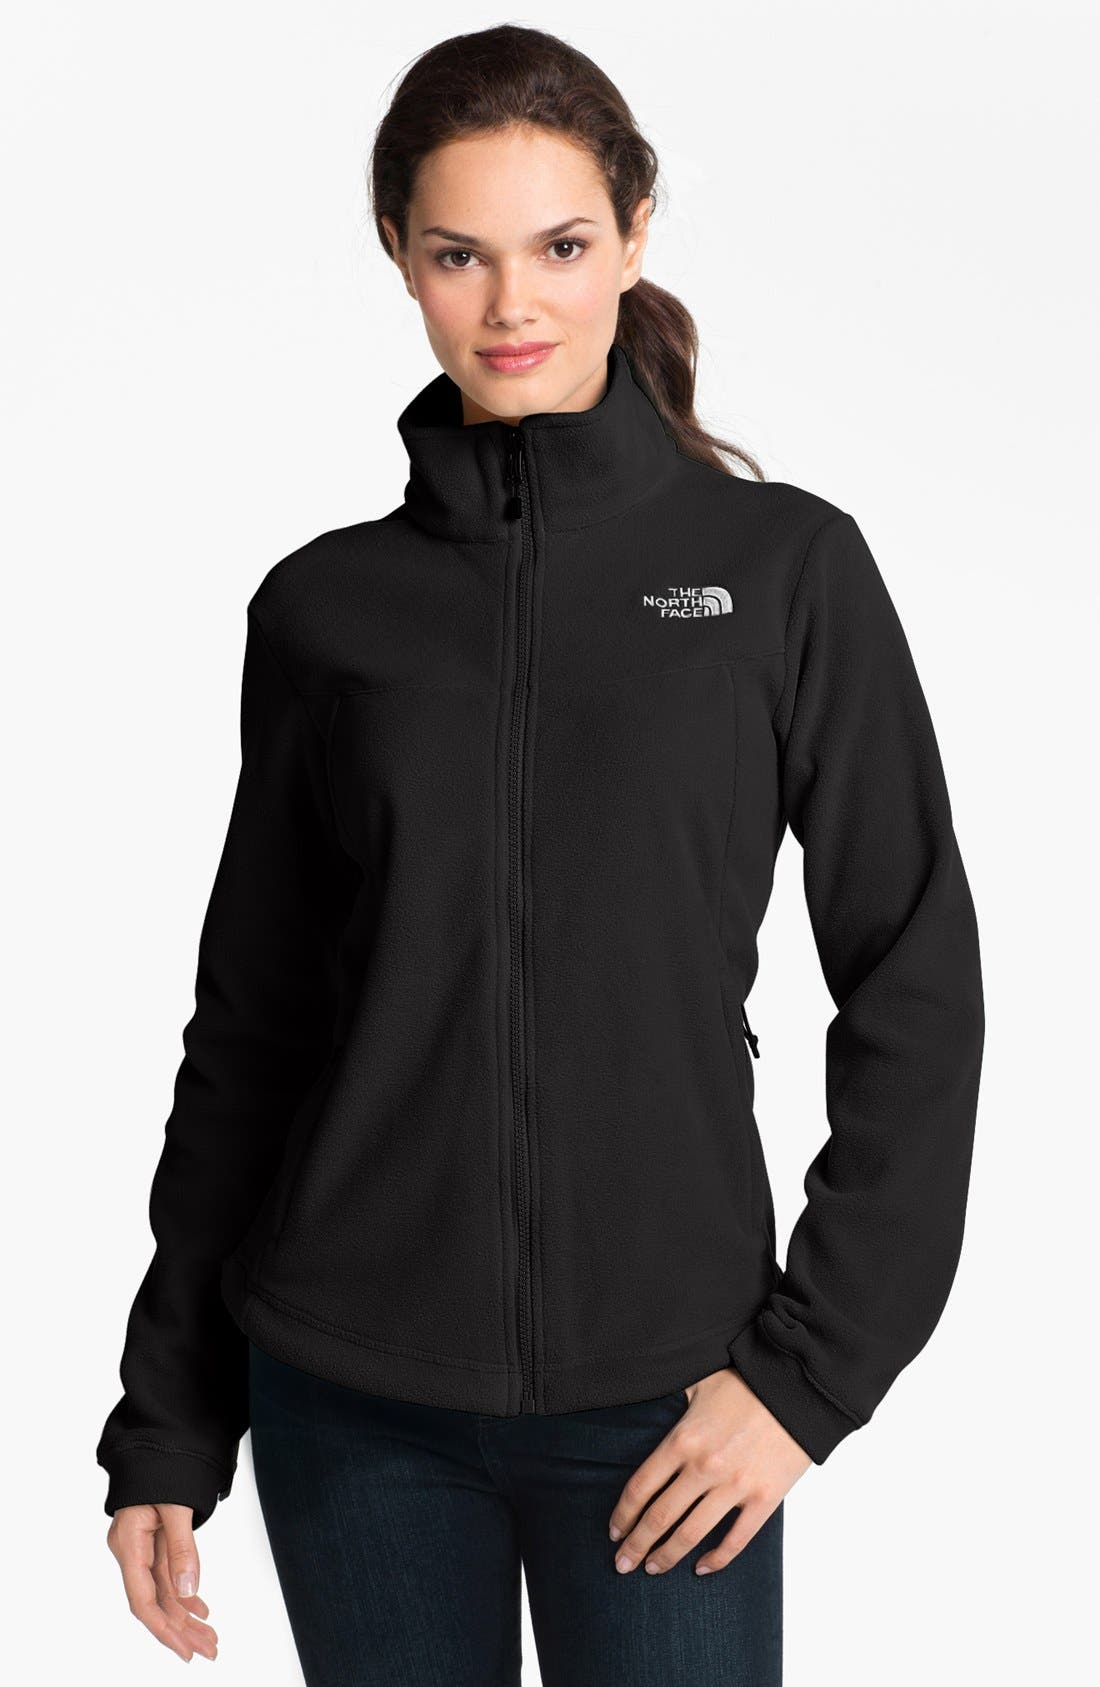 Alternate Image 1 Selected - The North Face 'Salathe' Fleece Jacket